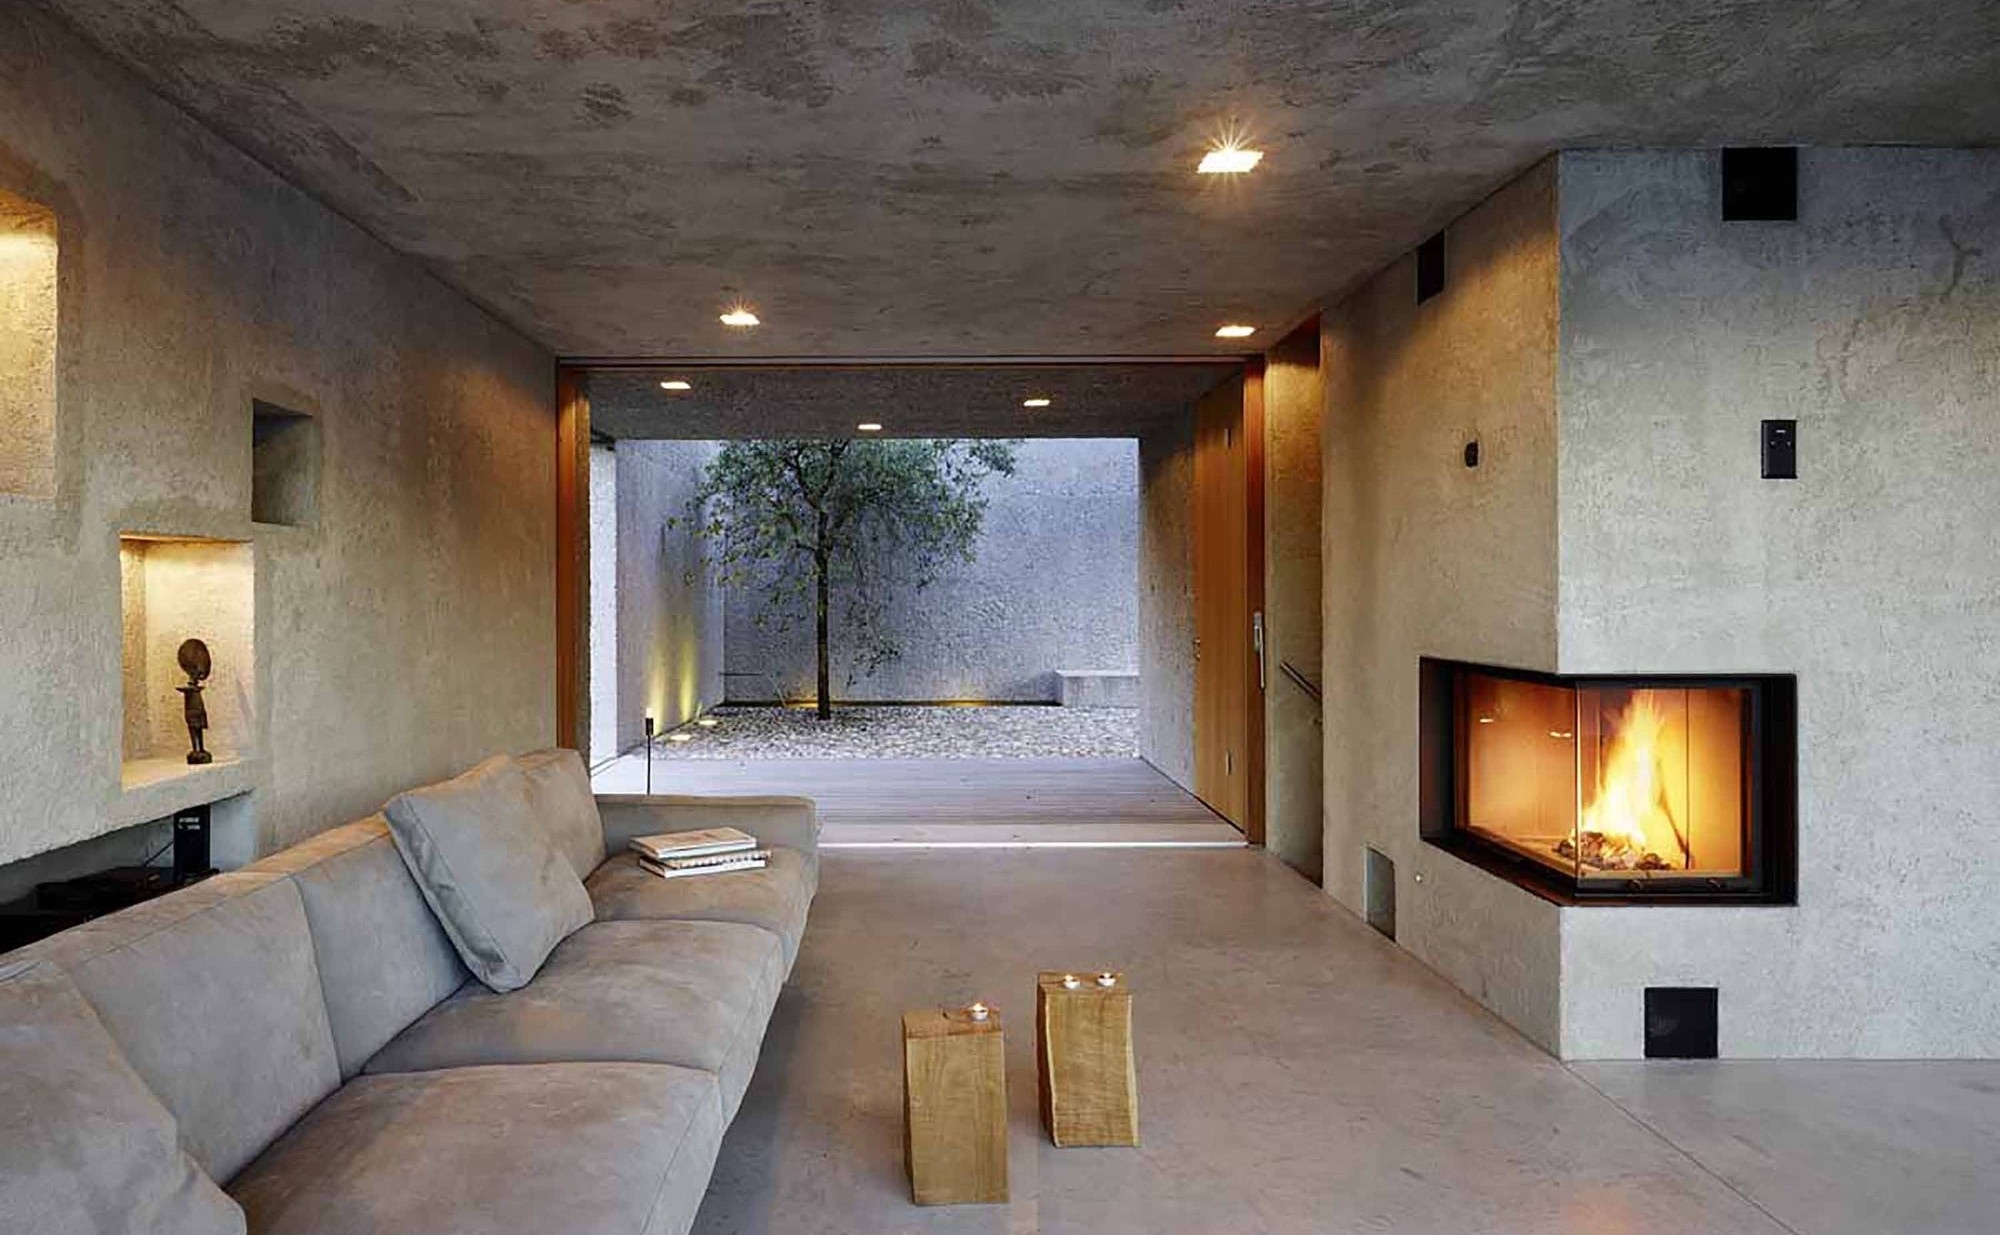 543dbf0bc07a801fe700027d_house-in-brissago-wespi-de-meuron-romeo-architects_1433_033359a